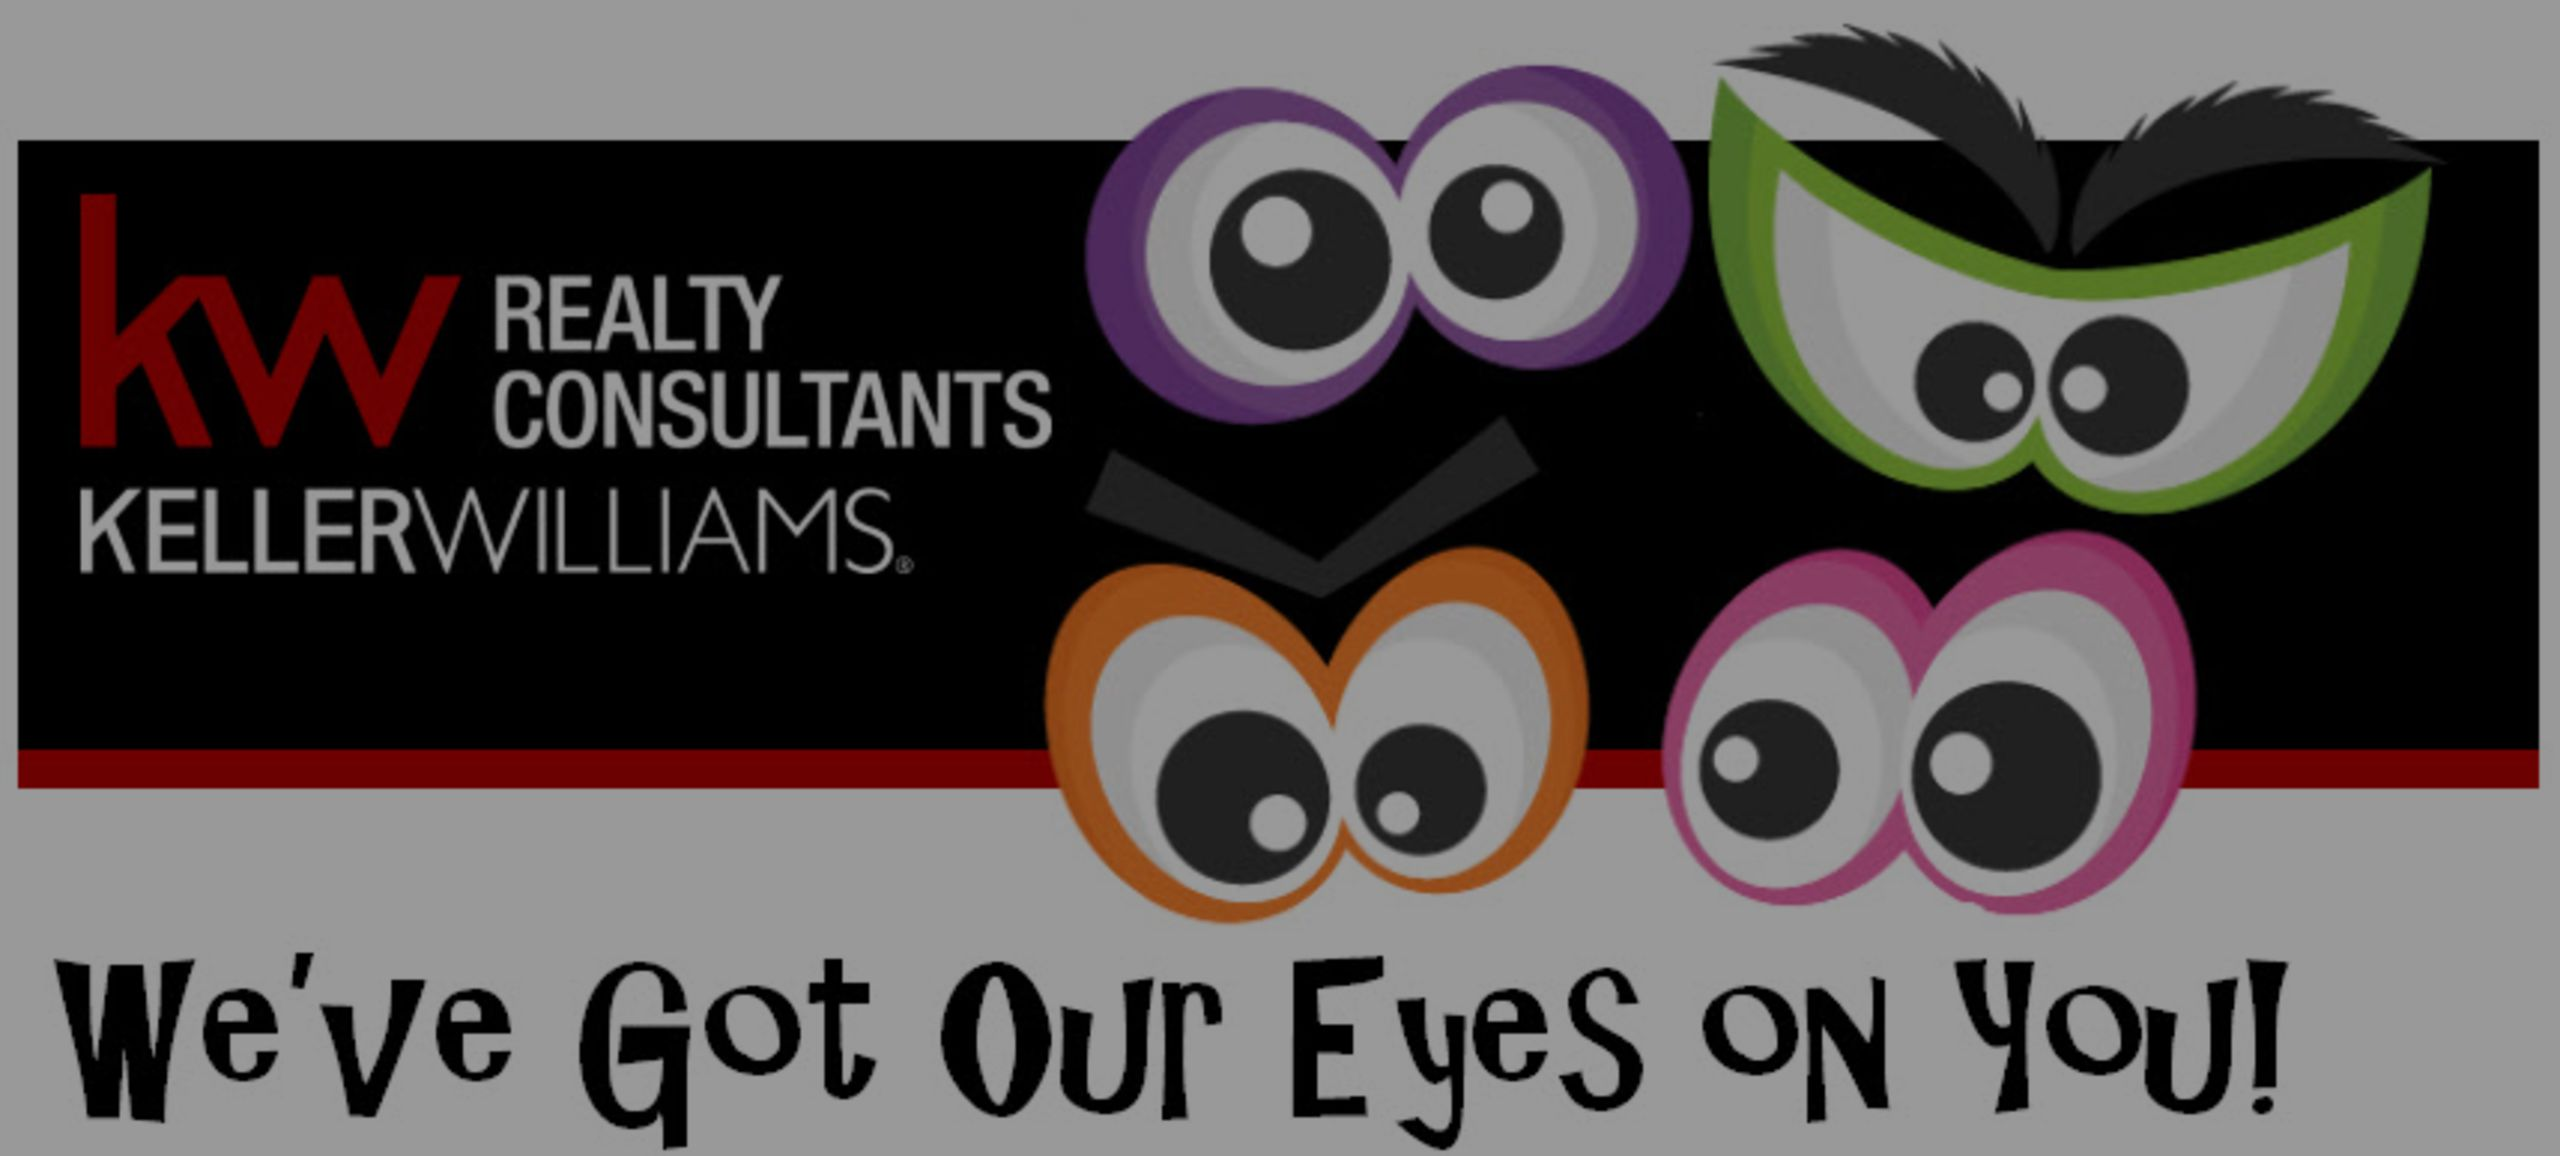 We've Got Our Eyes on You!